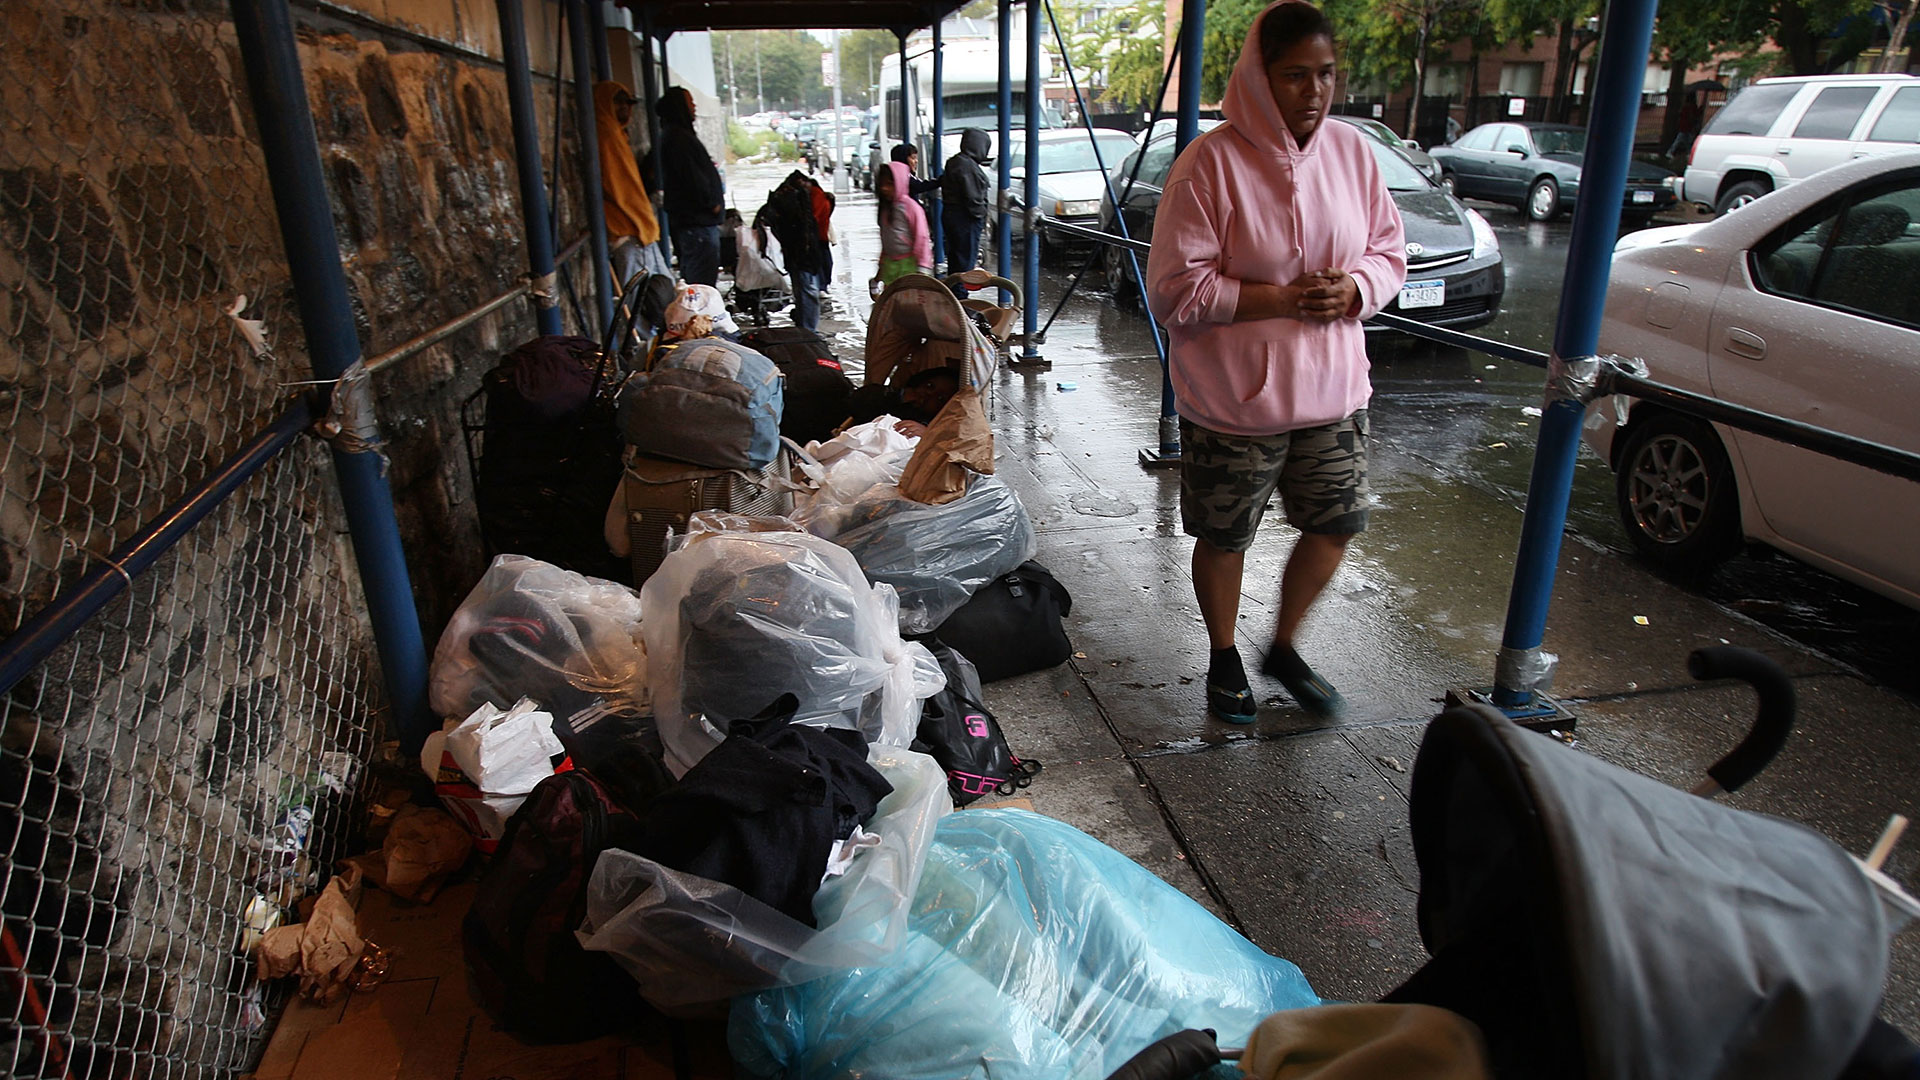 Families who are homeless wait to get into an emergency shelter in New York City.